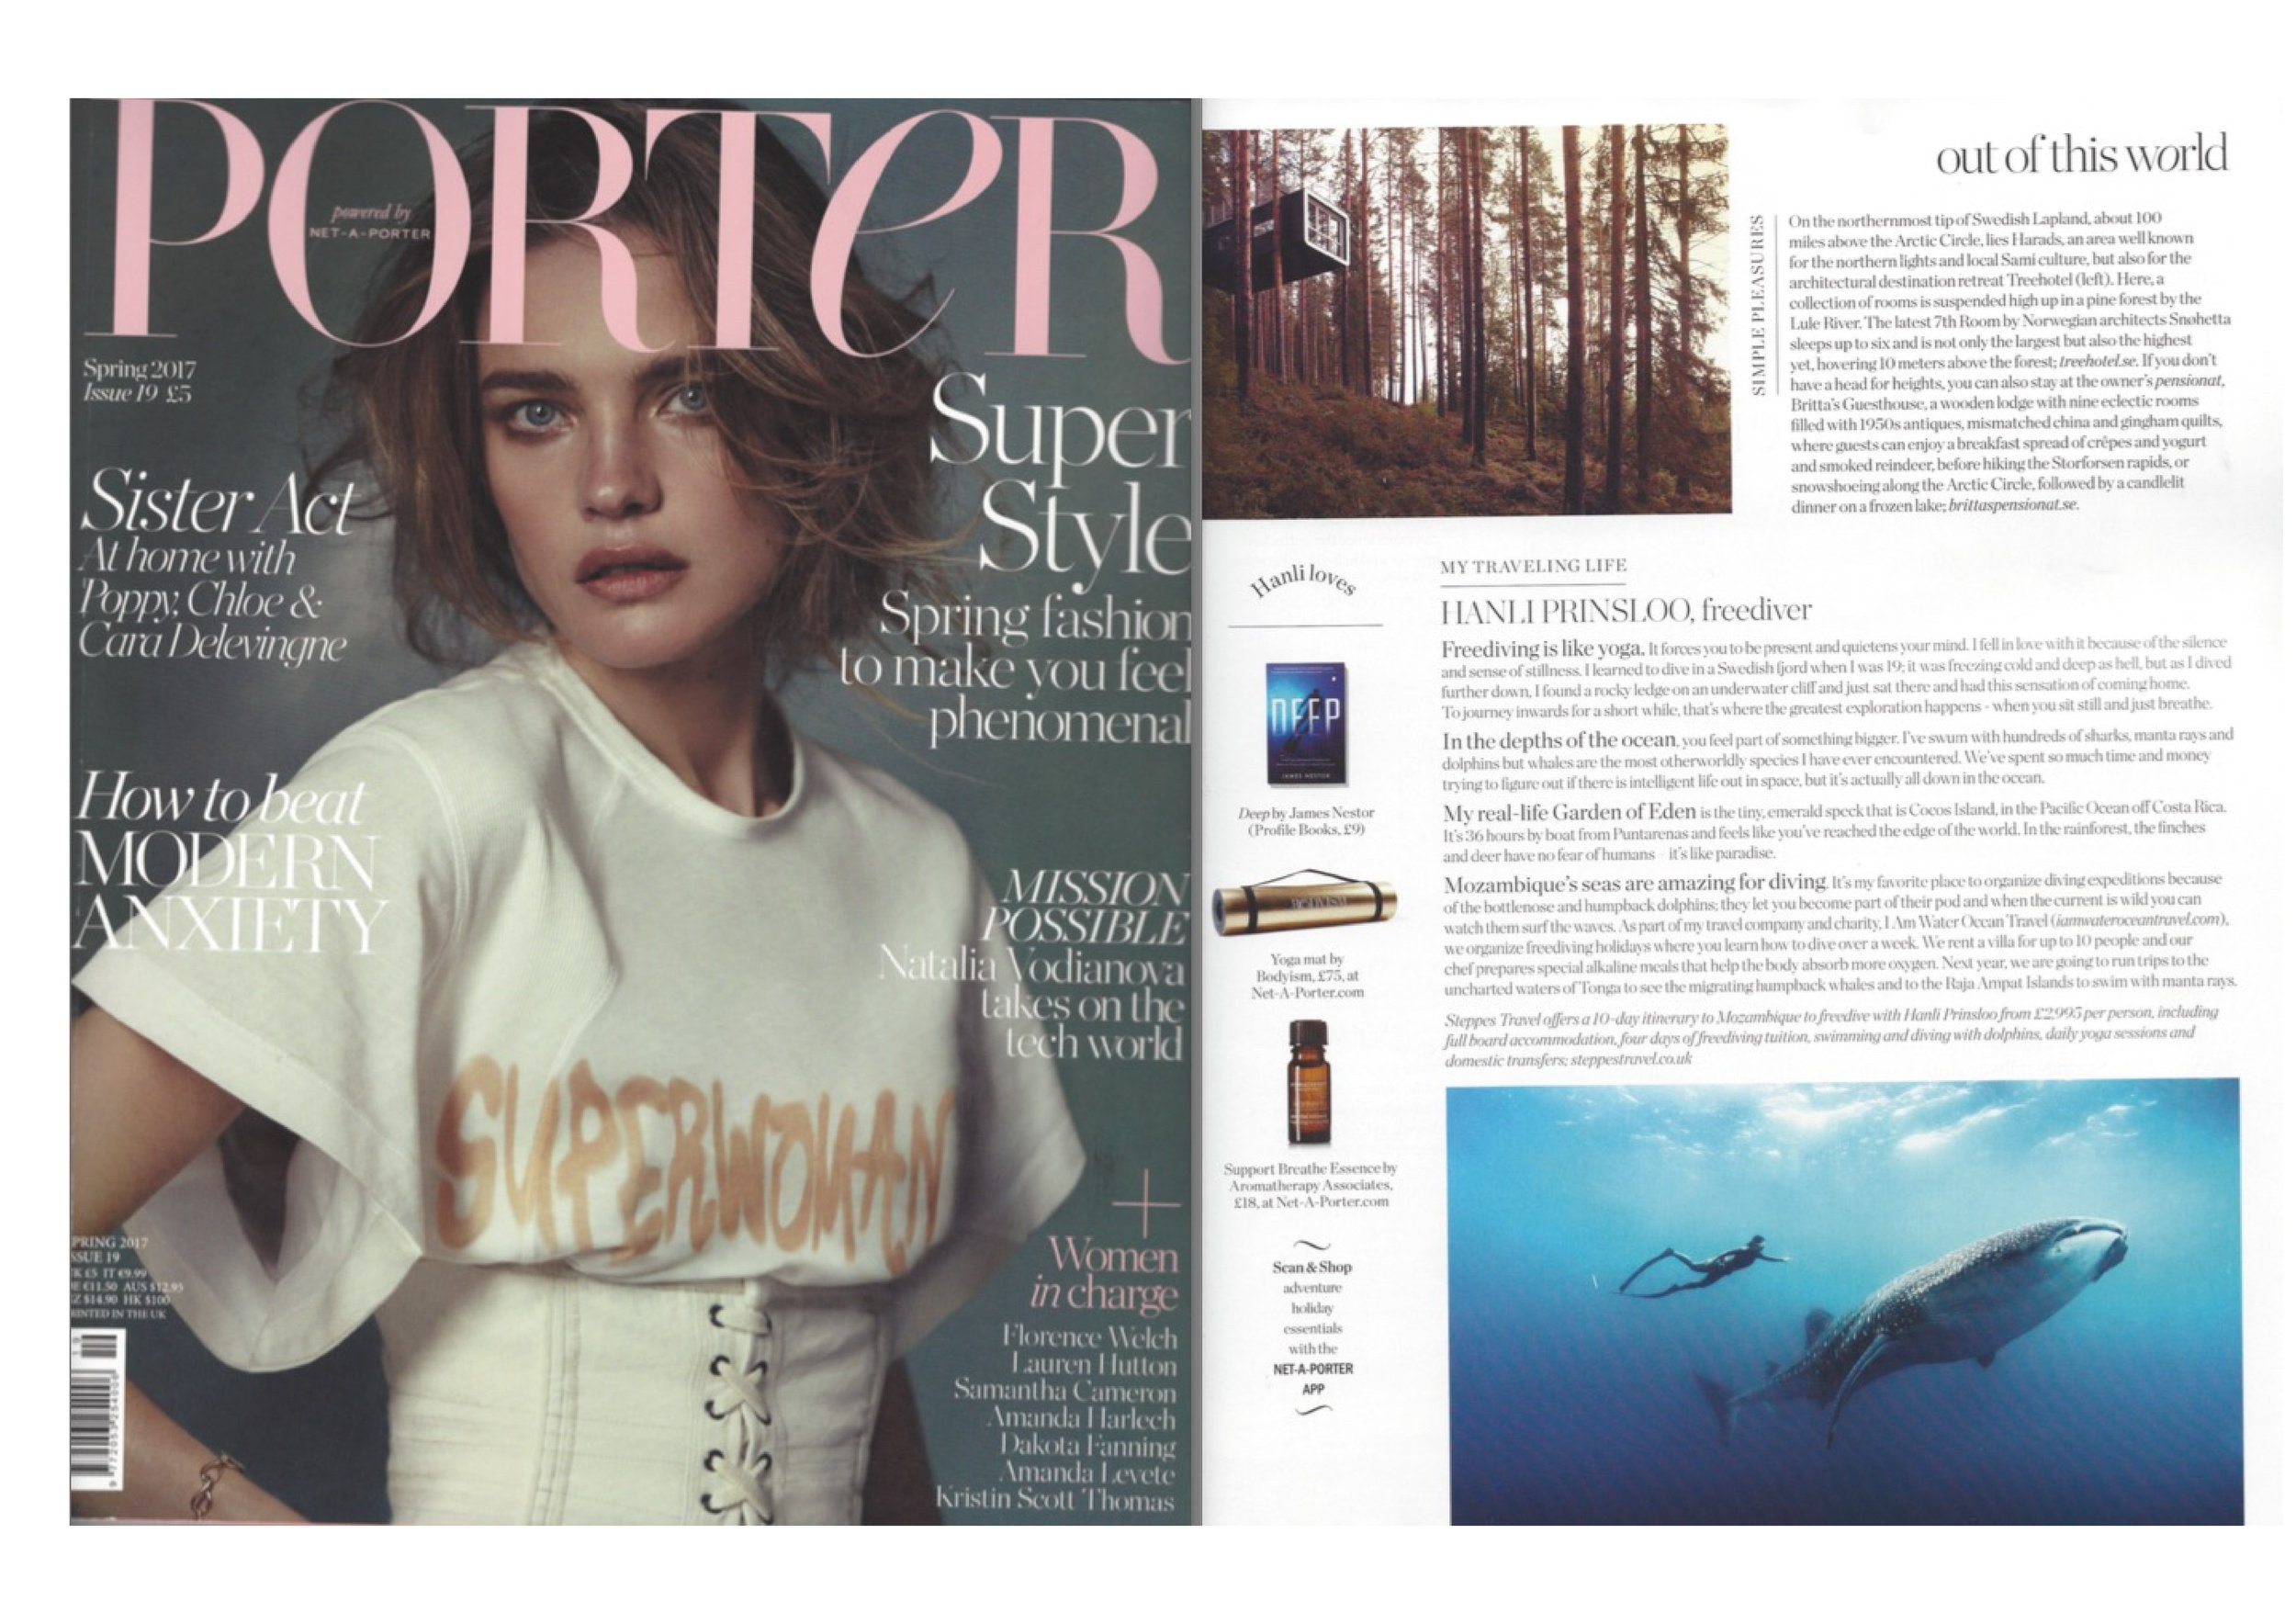 Porter Magazine  Spring 2017  'In the depths of the ocean you feel part of something bigger. I have swum with hundreds of sharks, manta rays and dolphins but whales are the most otherworldly species I have ever encountered. We have spent so much time and money trying to figure out if there is intelligent life out in space, but it is actually all down in the ocean.'